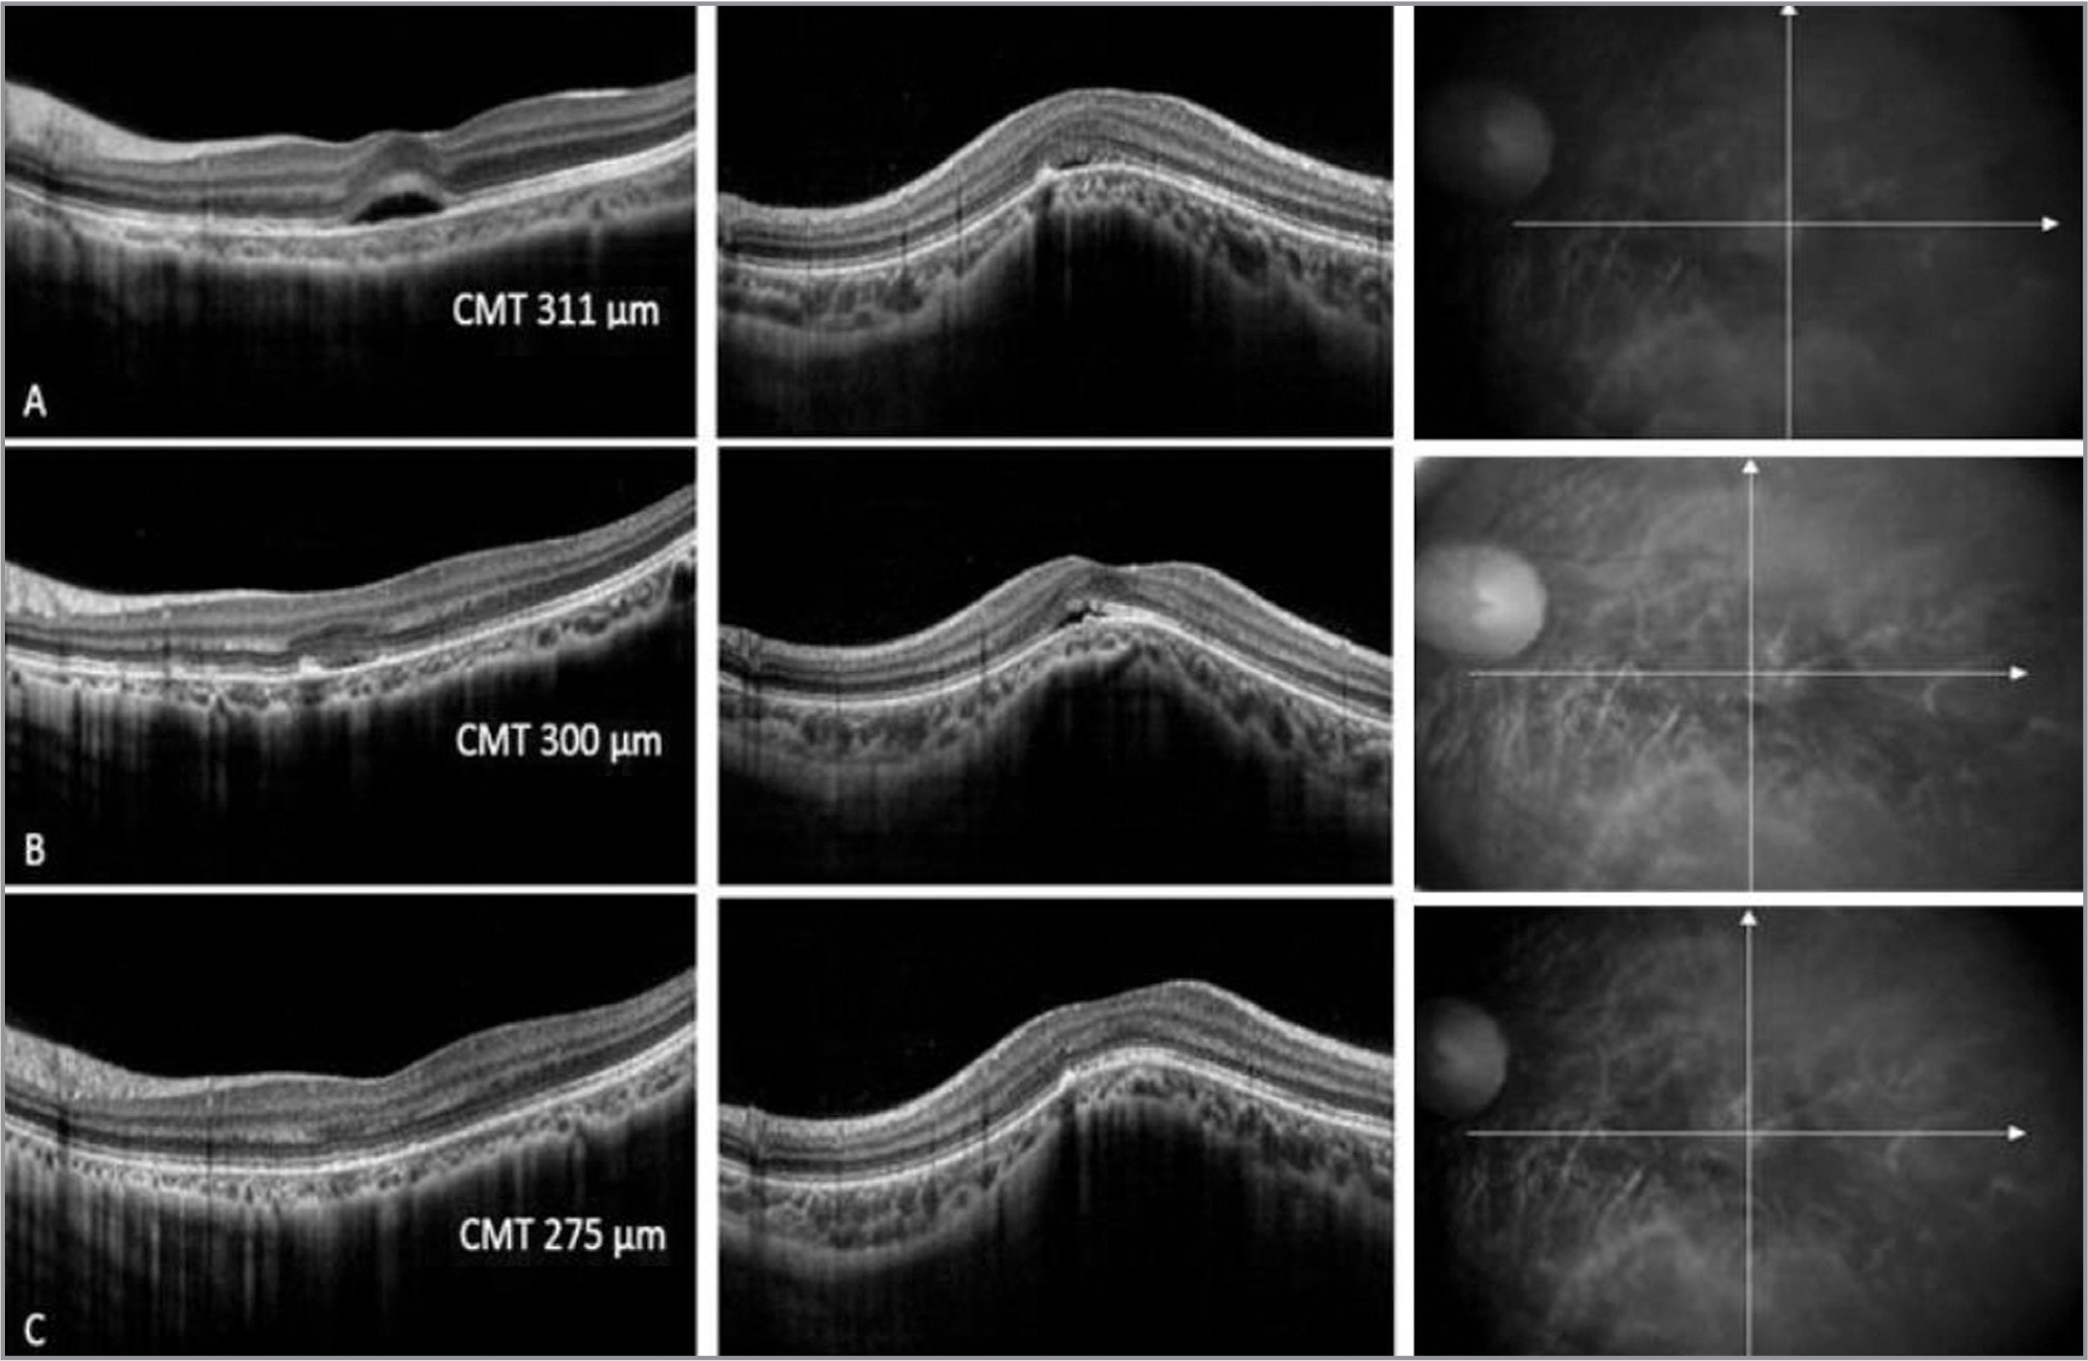 Macular optical coherence tomography after treatment with topical carbonic anhydrase inhibitors. Horizontal section (left) and vertical section (right). Central macular thickness (μm). (A) After 1 month of treatment. (B) After 2 months of treatment. (C) After 4 months of treatment (6 months).